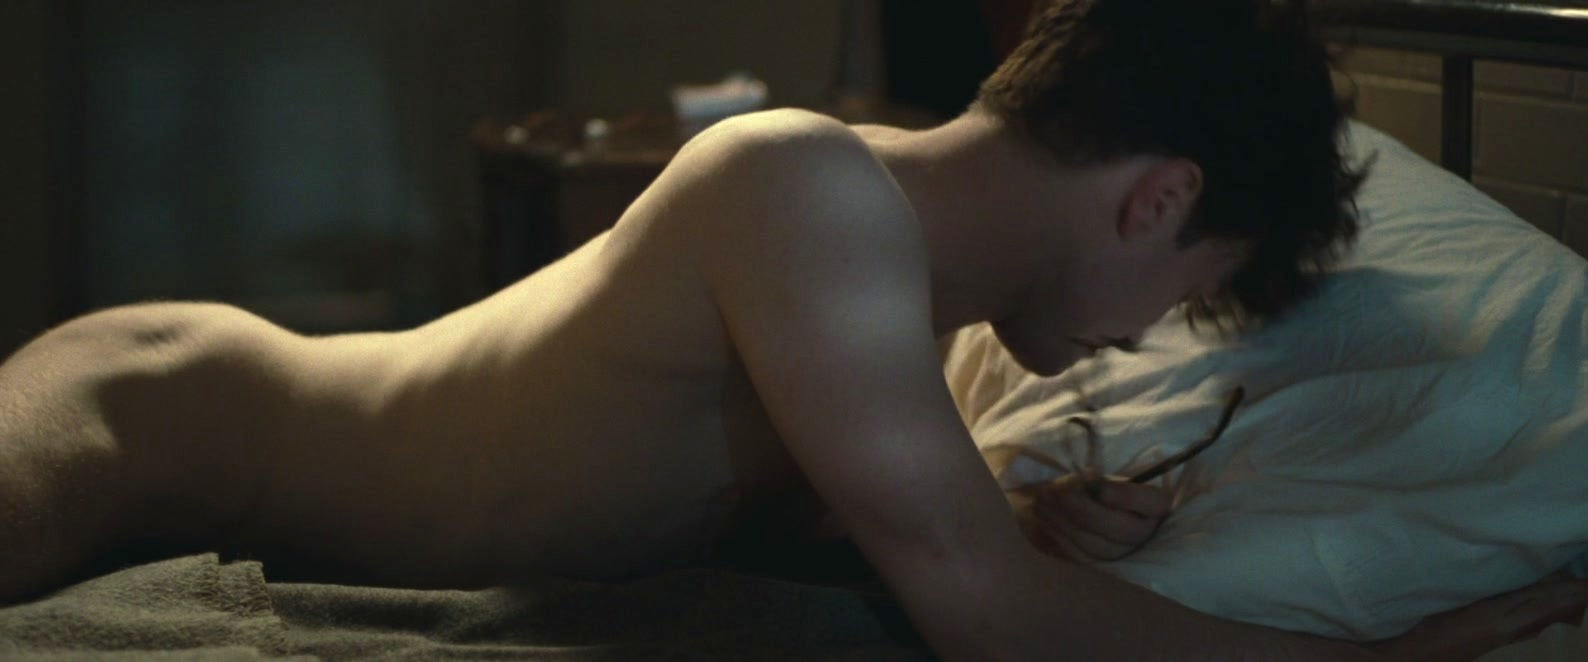 Daniel radcliffe having anal sex videos